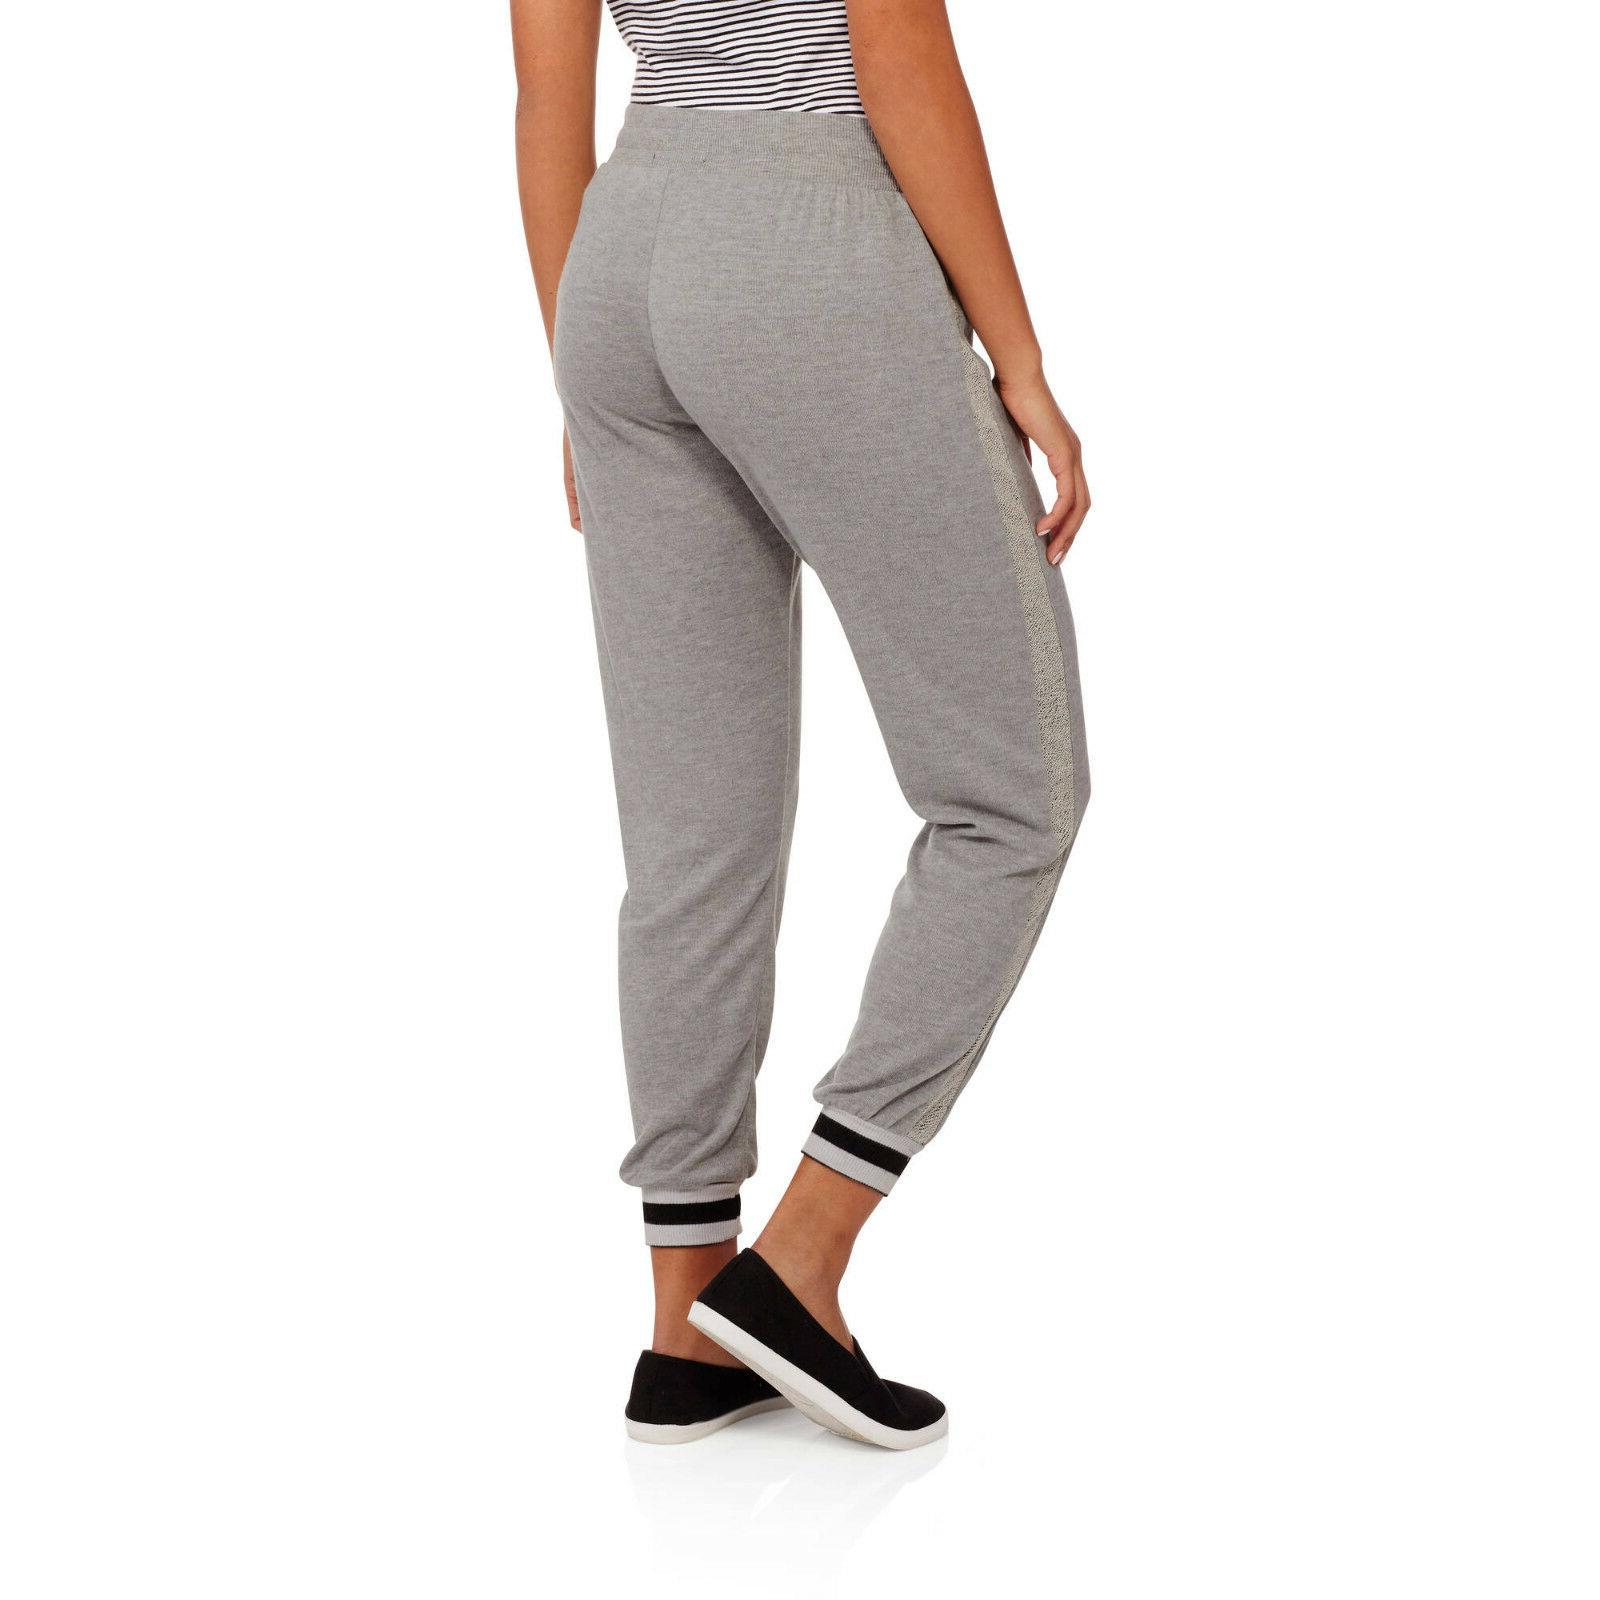 Eye Candy Juniors' Cozy Brushed French Jogger Sweatpants w/ Sporty